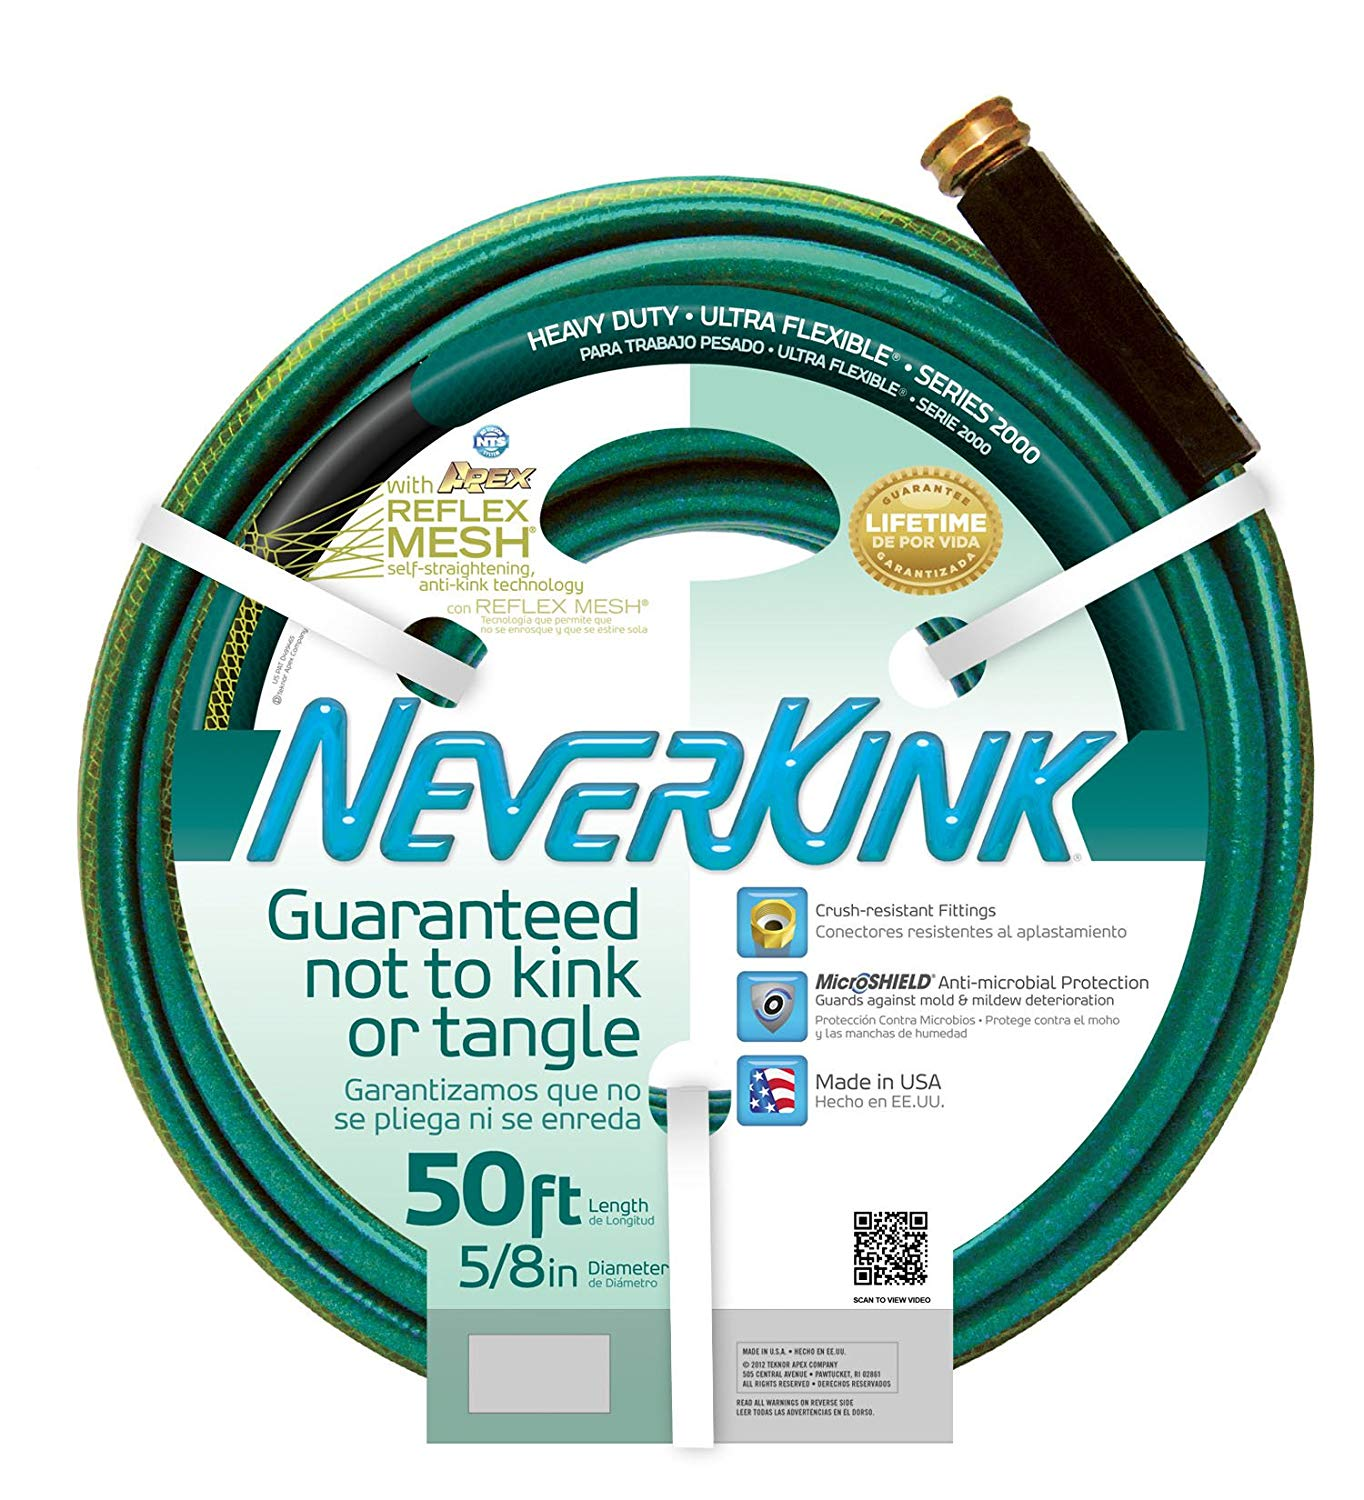 Apex 8605-50 NeverKink 2000 5/8-Inch by 50-Feet Heavy Duty Ultra Flexible Hose